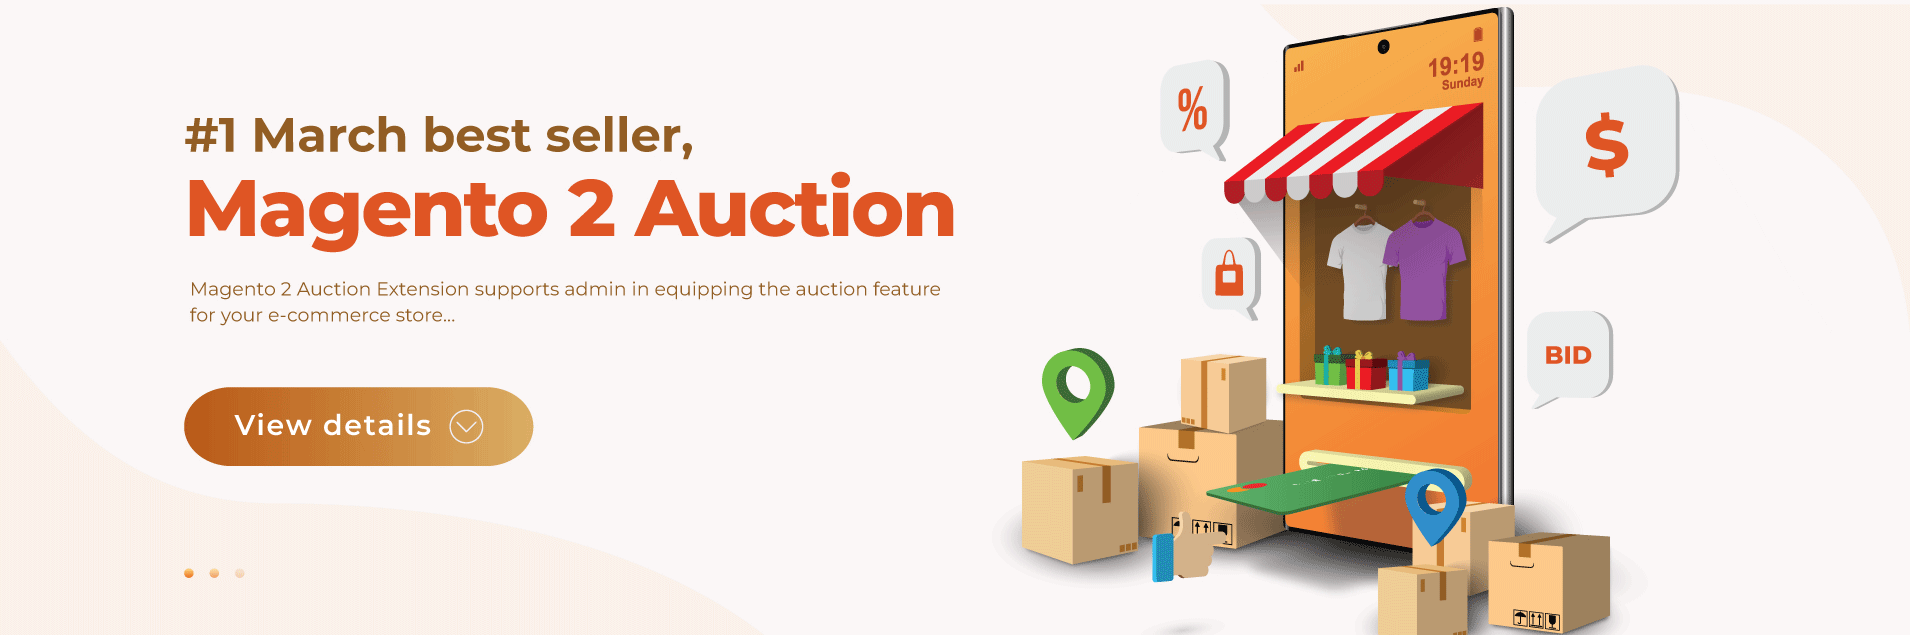 Magento 2 Auction Bidding Extension